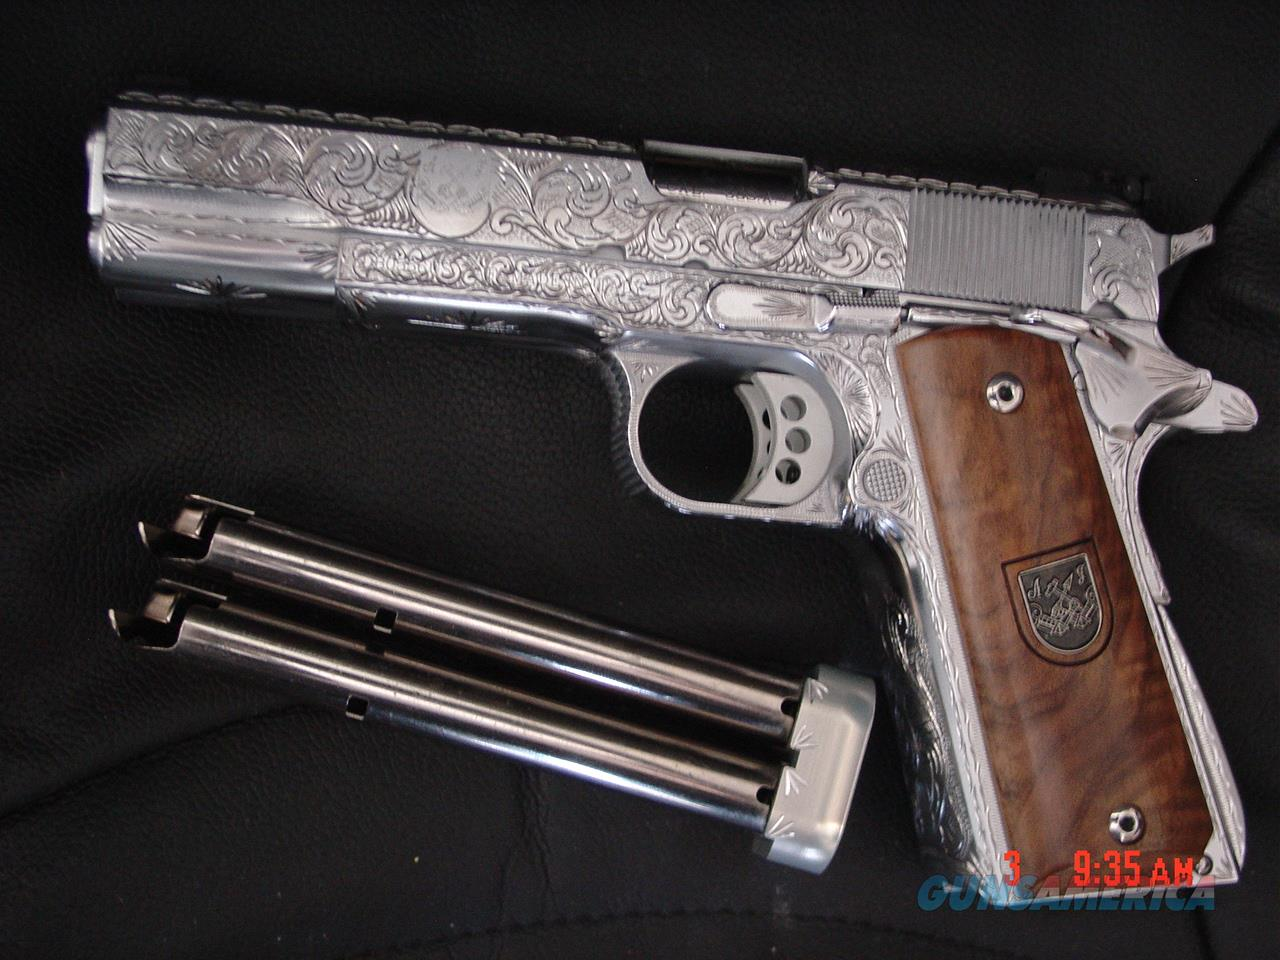 Af2011 A1 arsenal firearms double barrel,4.5lbs.,38 super,fully engraved & polished flannery engraving,16 shots,model af2011-a1,never fired,awesome  firepower